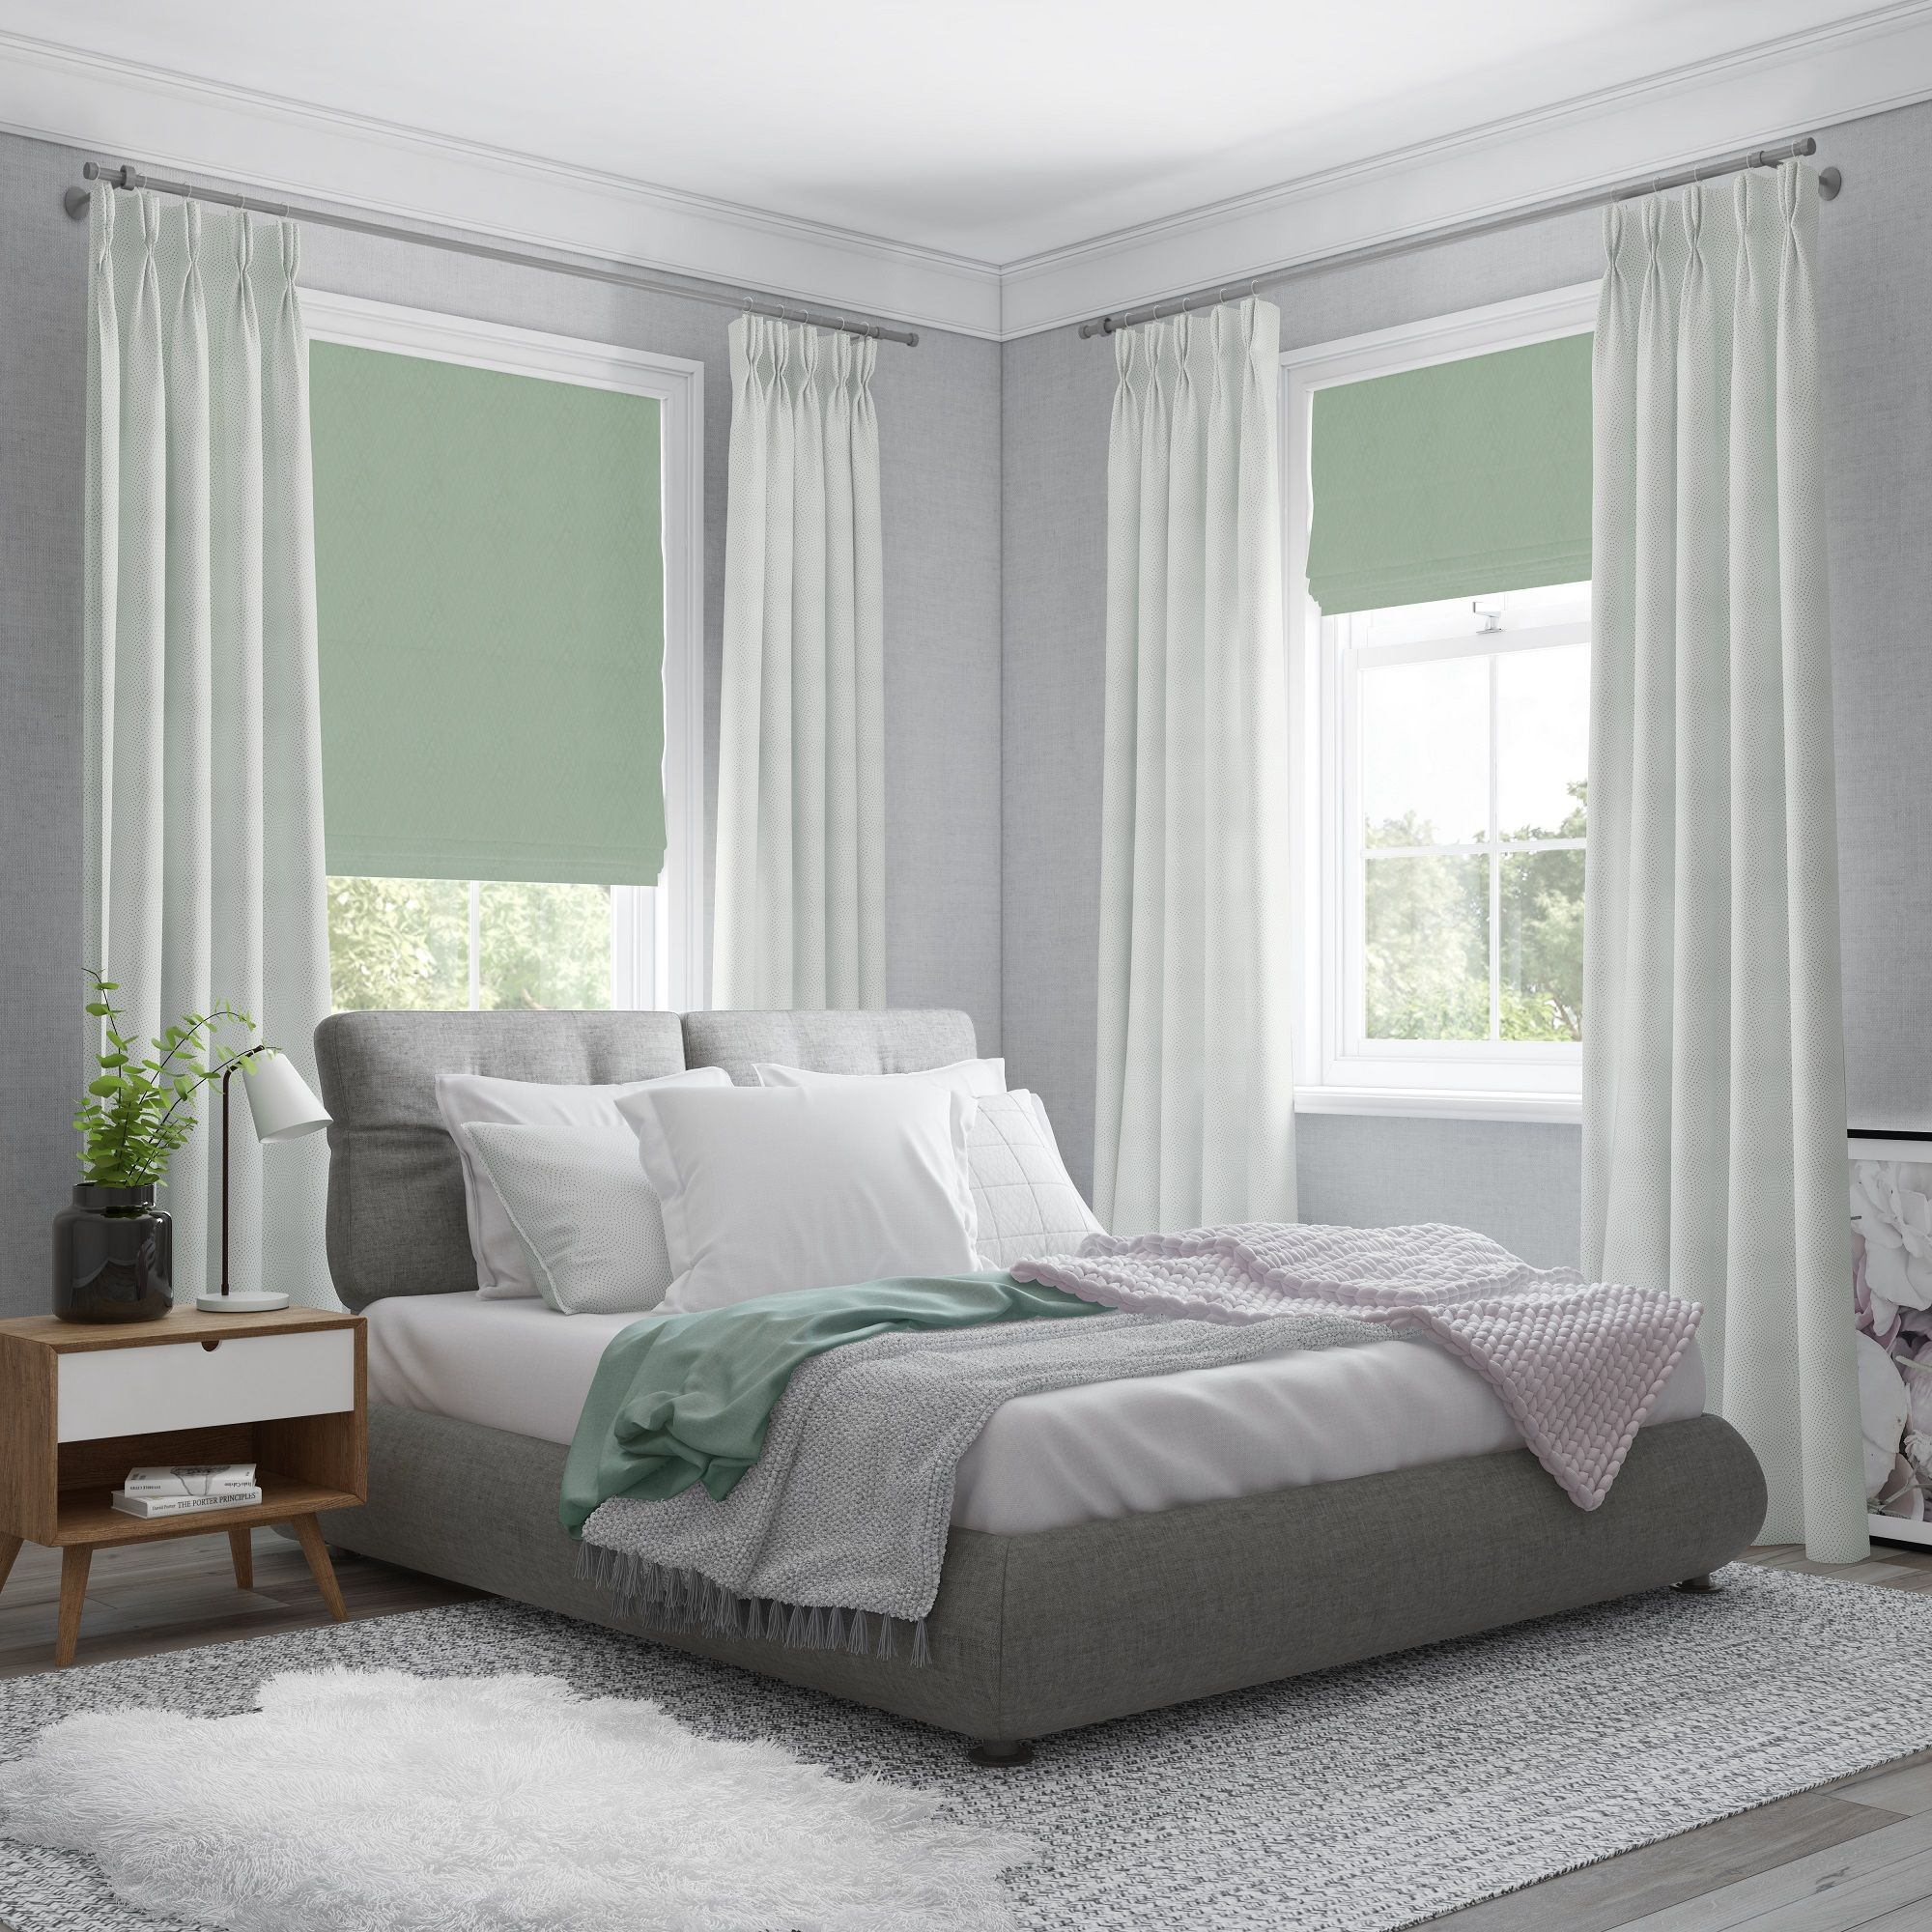 Color trends for the year 2020